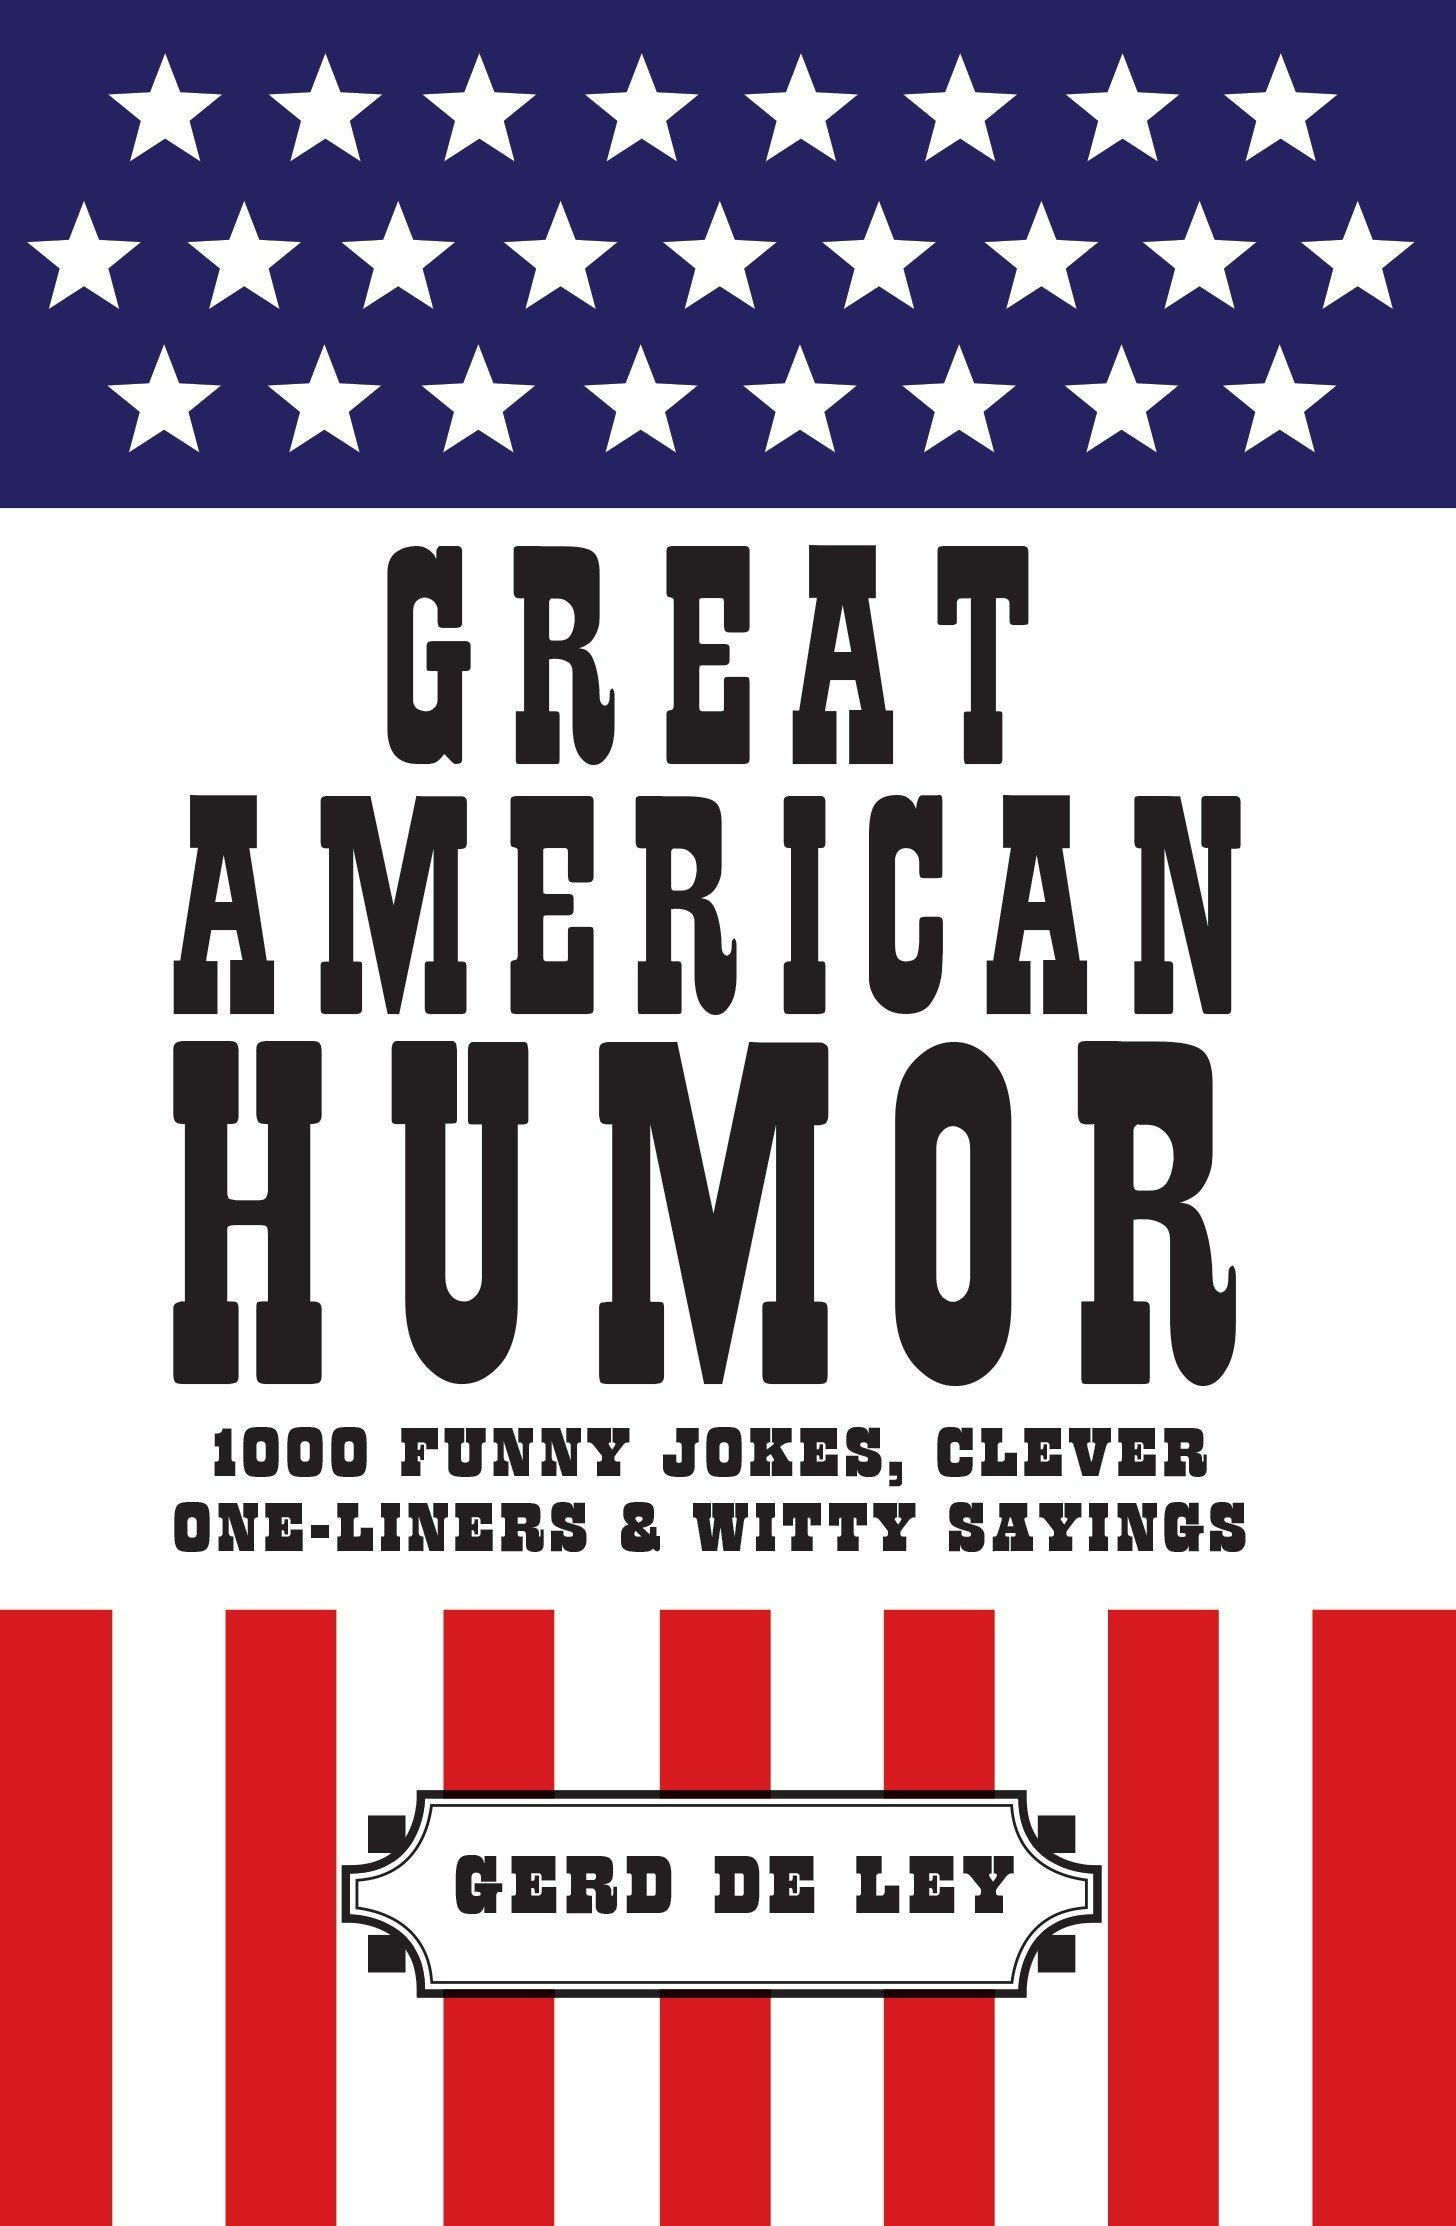 Great American Humor: 1000 Funny Jokes, Clever One-Liners & Witty Sayings (Little Book. Big Idea.) ebook